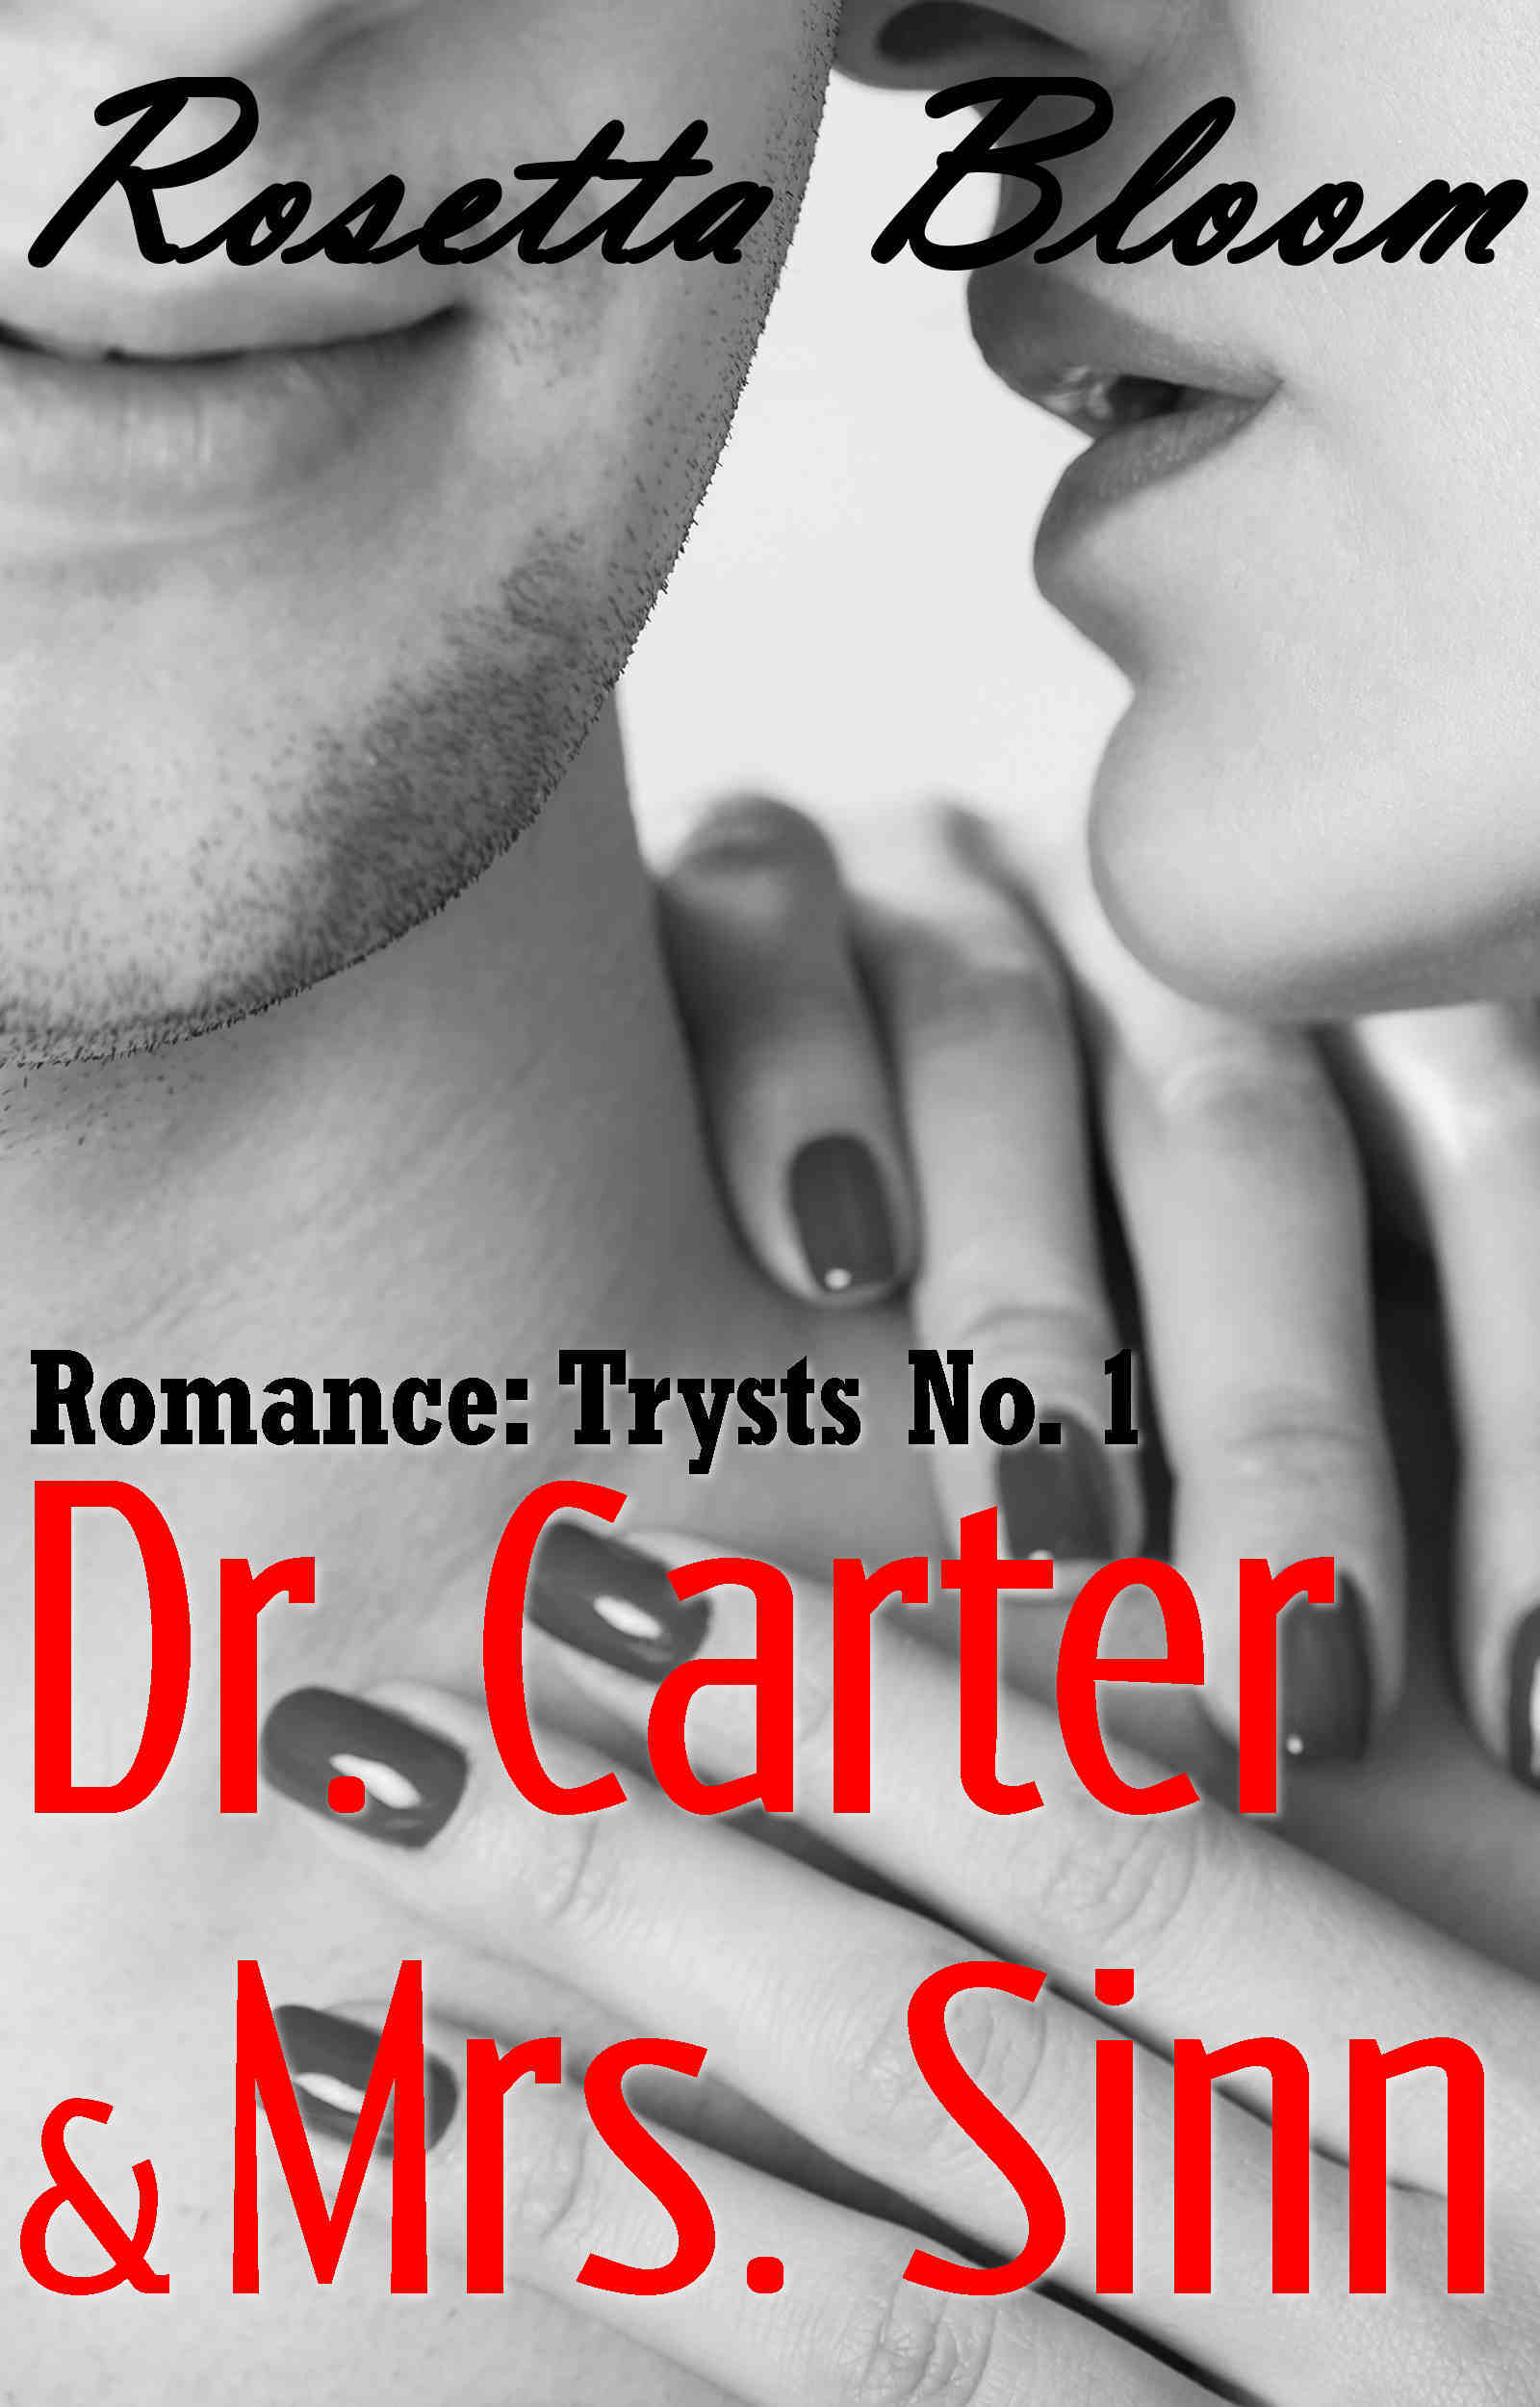 Romance: Trysts No. 1 Dr. Carter and Mrs. Sinn  by  Rosetta Bloom